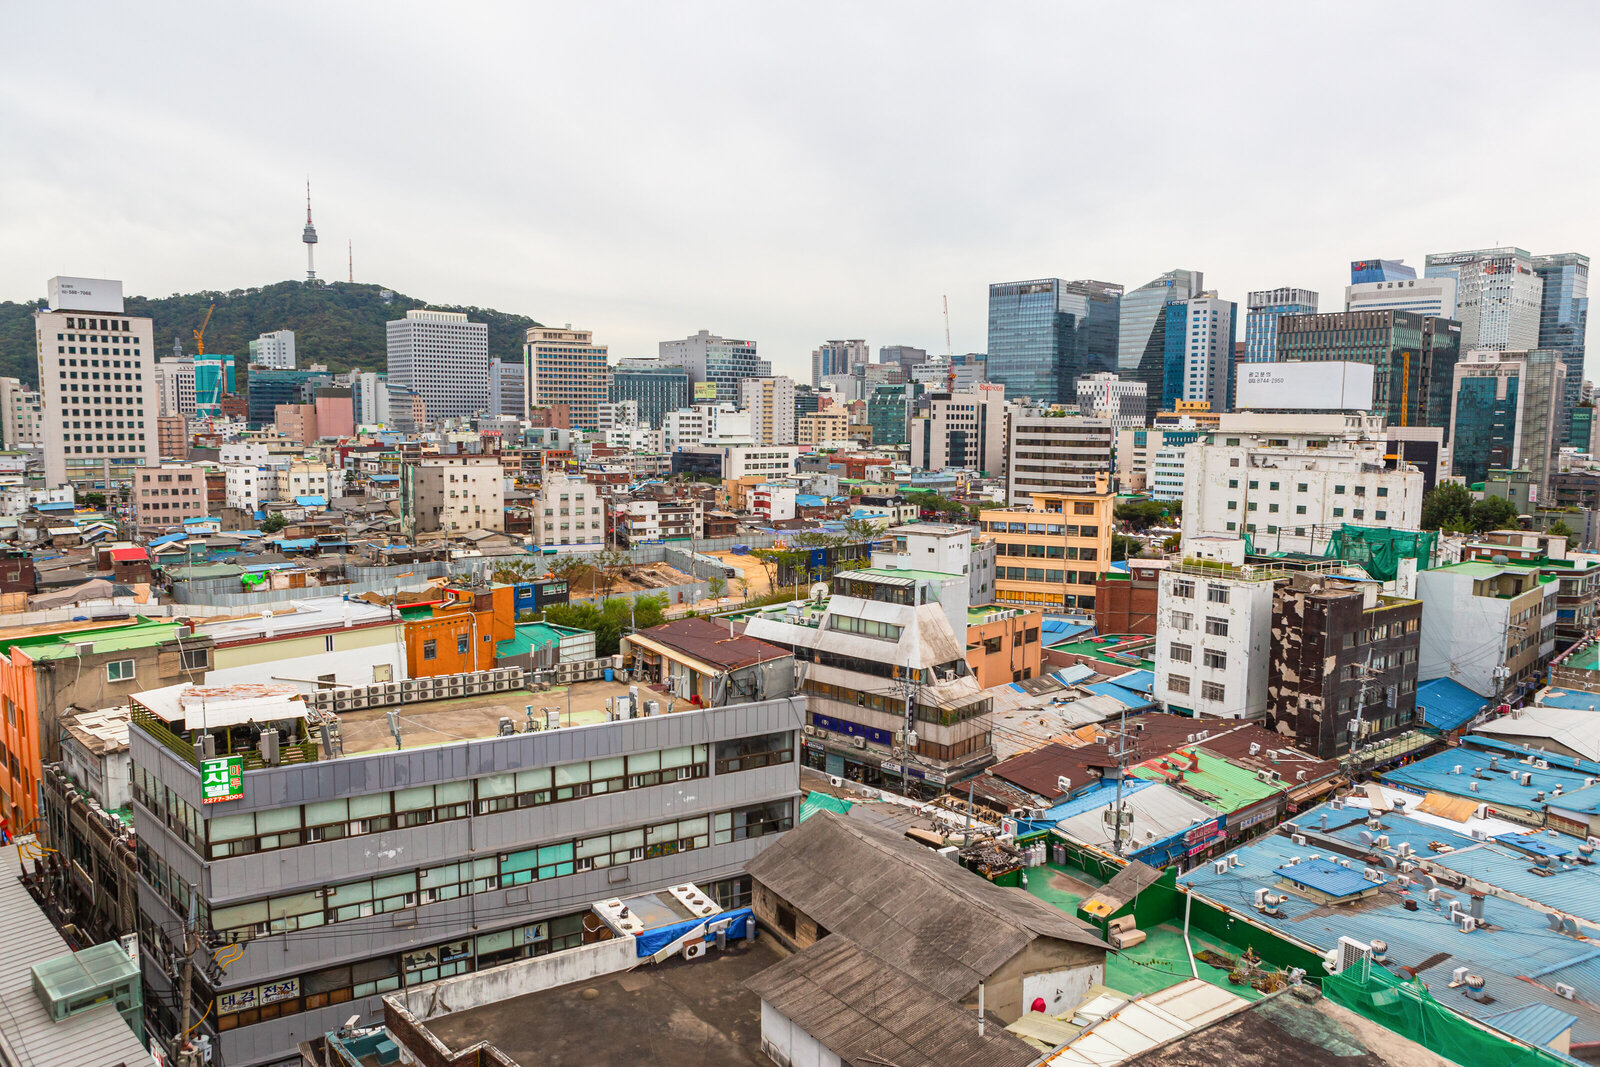 001-KBP-South-Korea-Seoul-rooftops-city-view-001